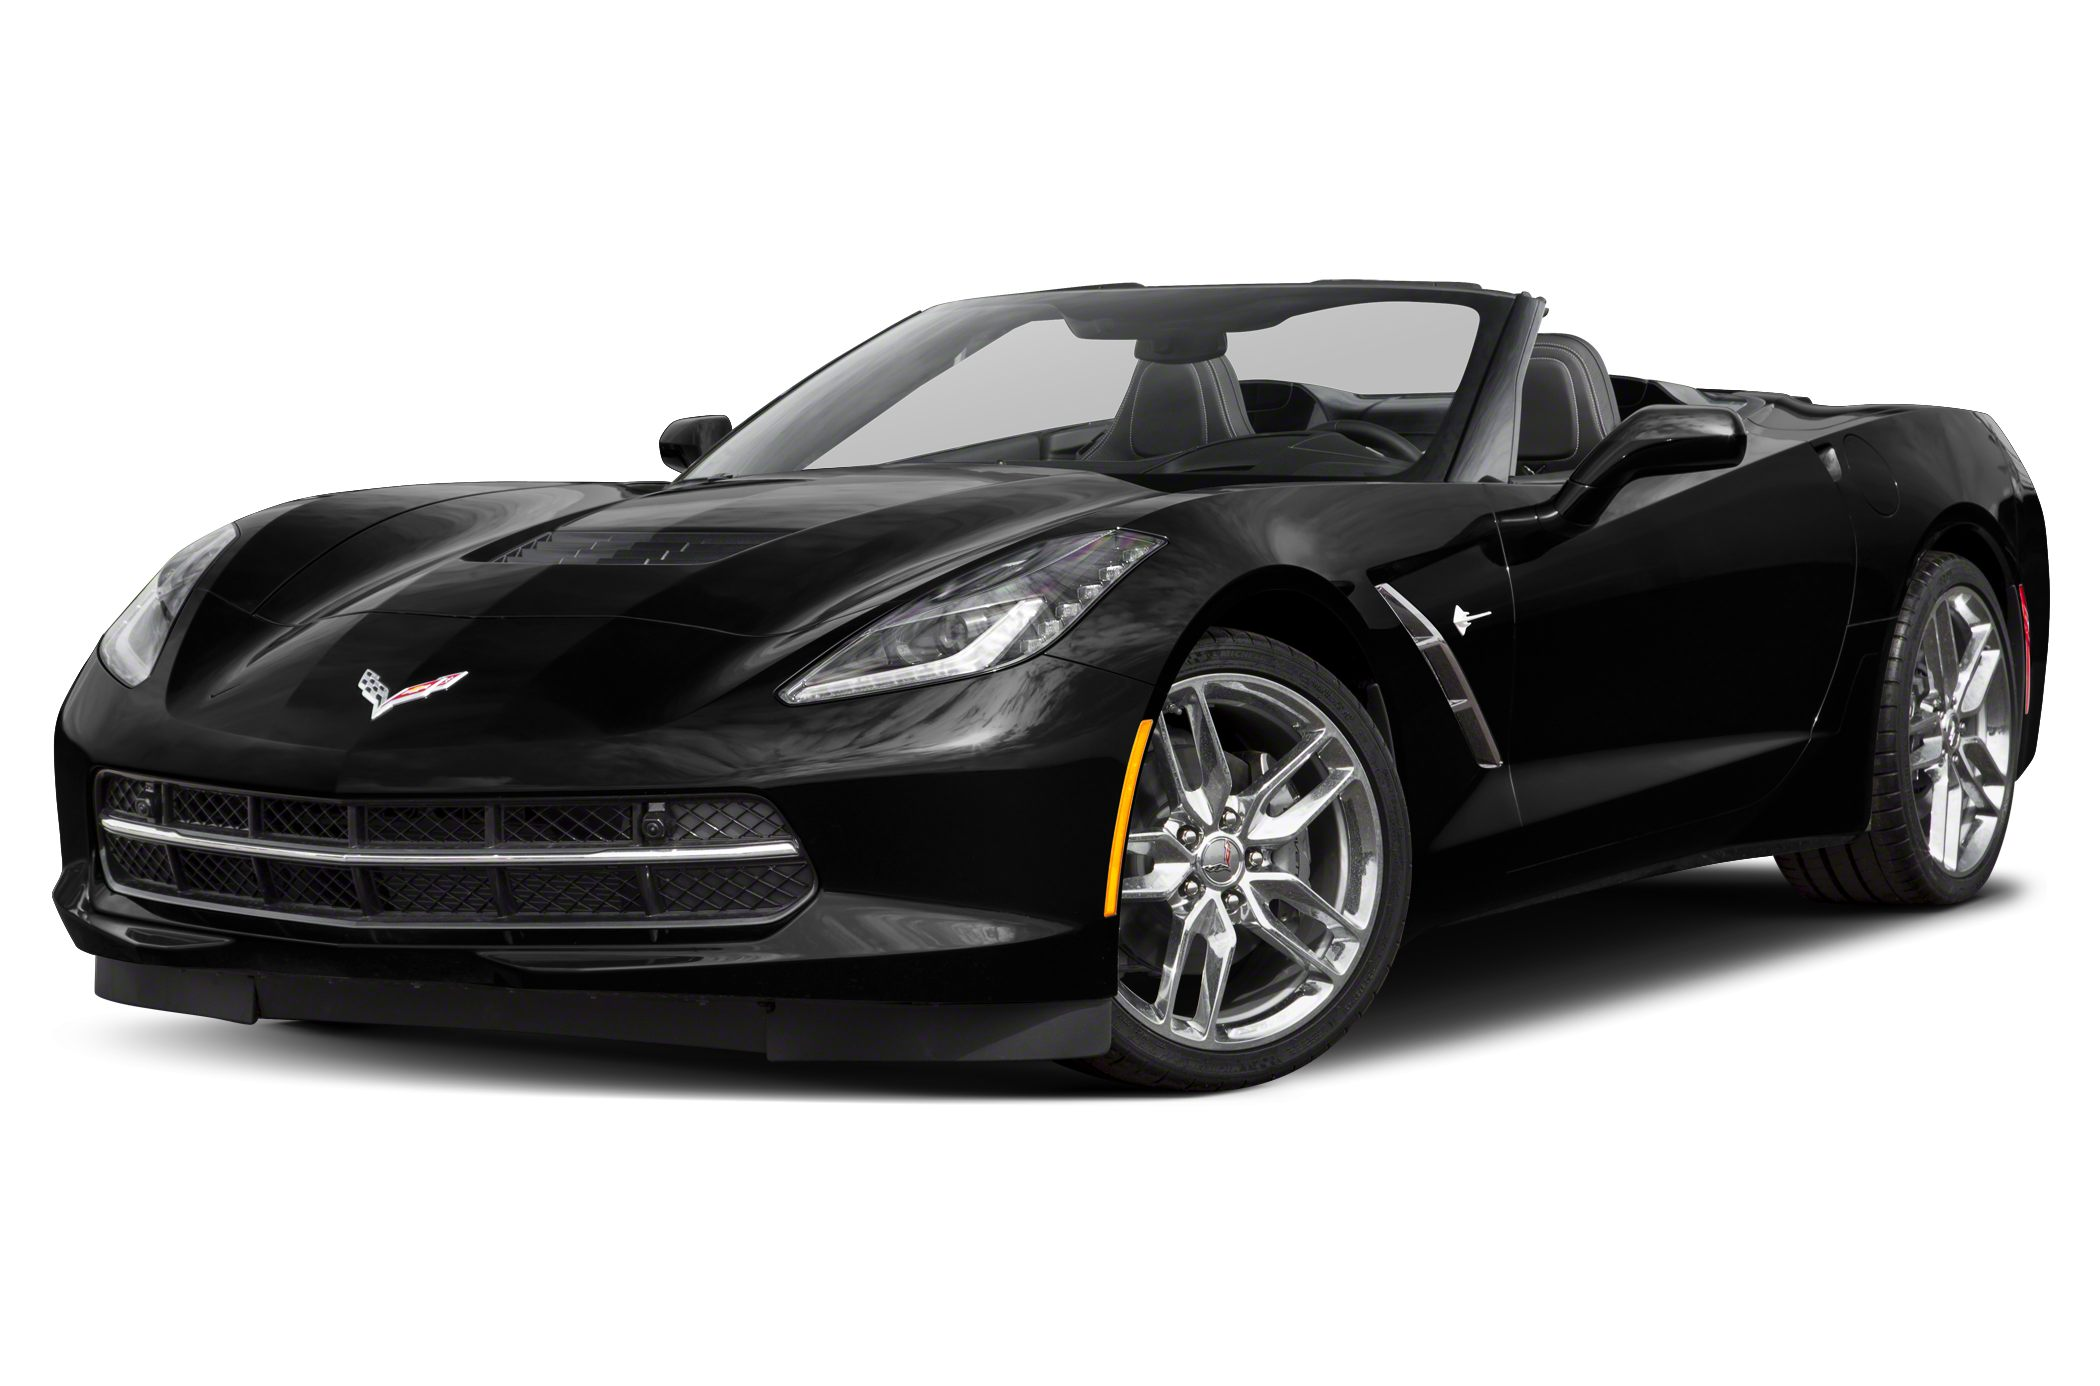 2019 Chevrolet Corvette Stingray 2dr Convertible